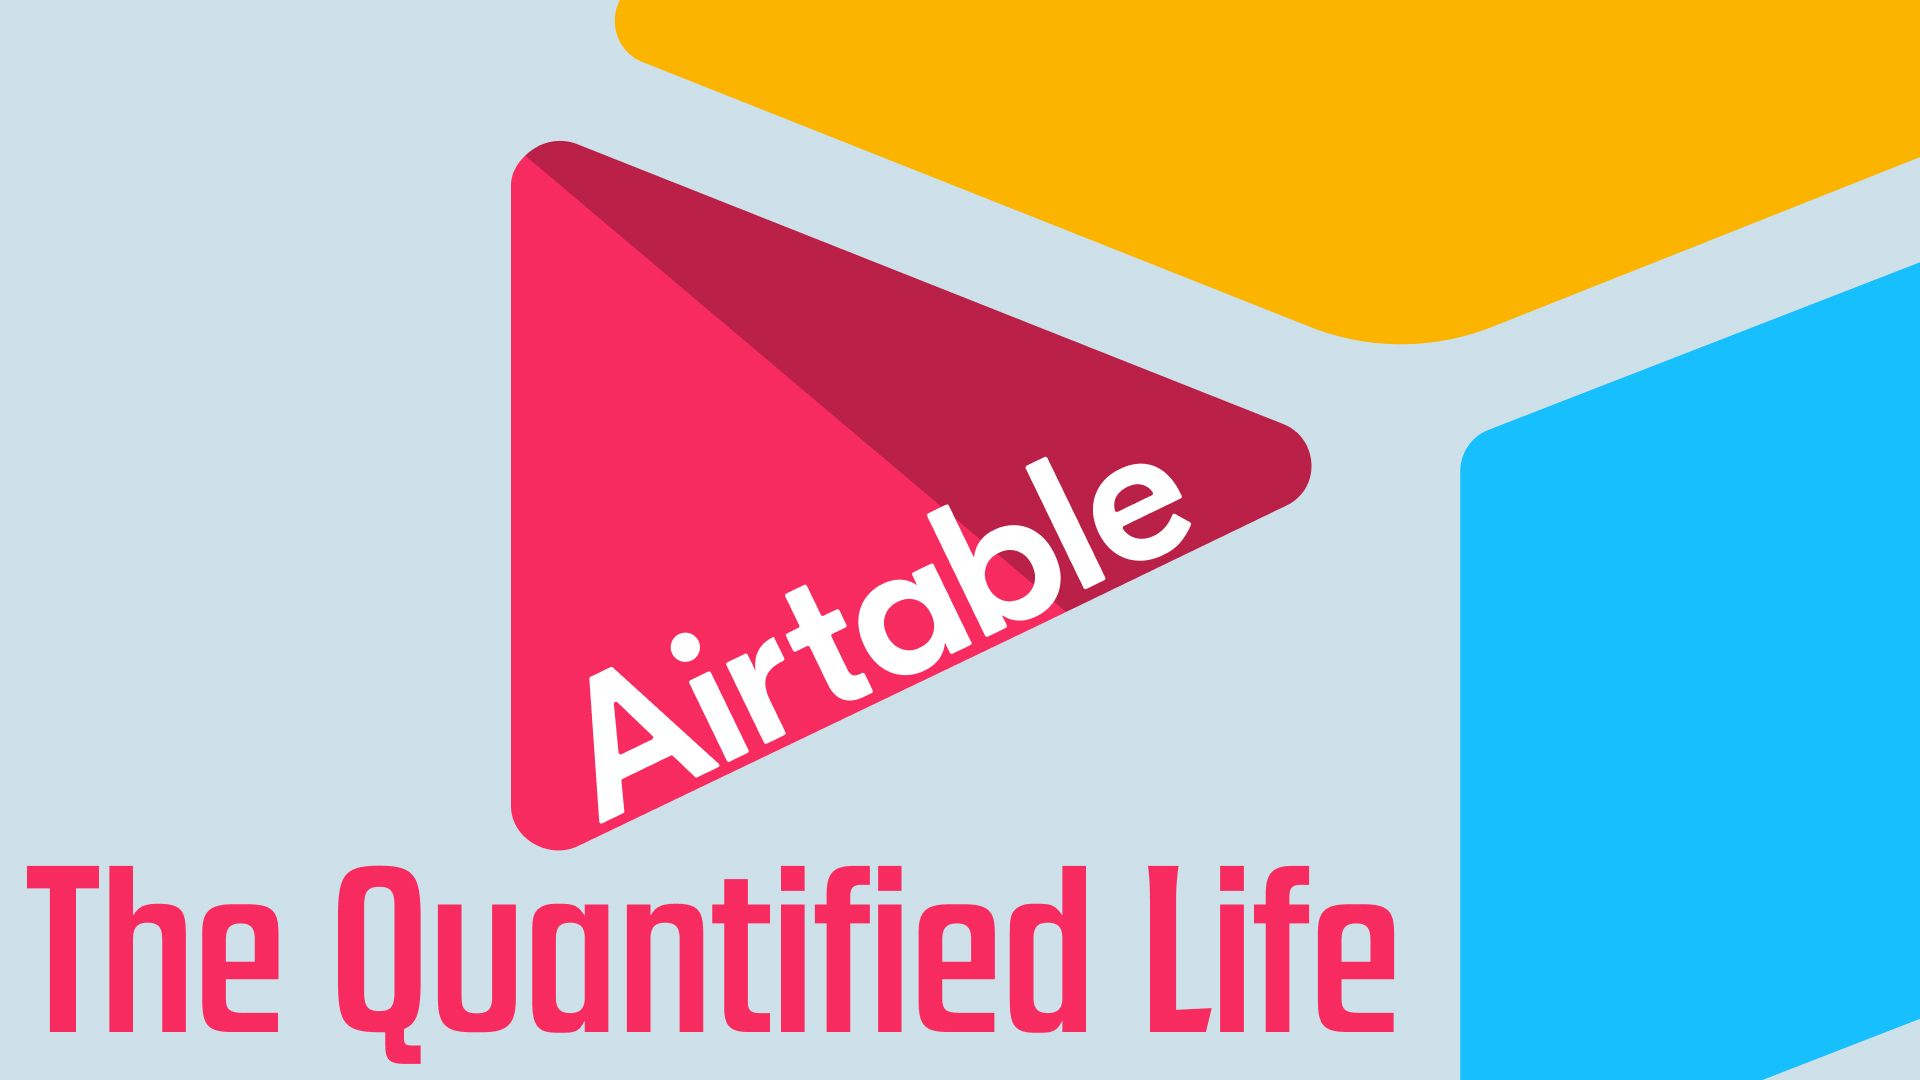 How I Use Airtable to Quantify My Life